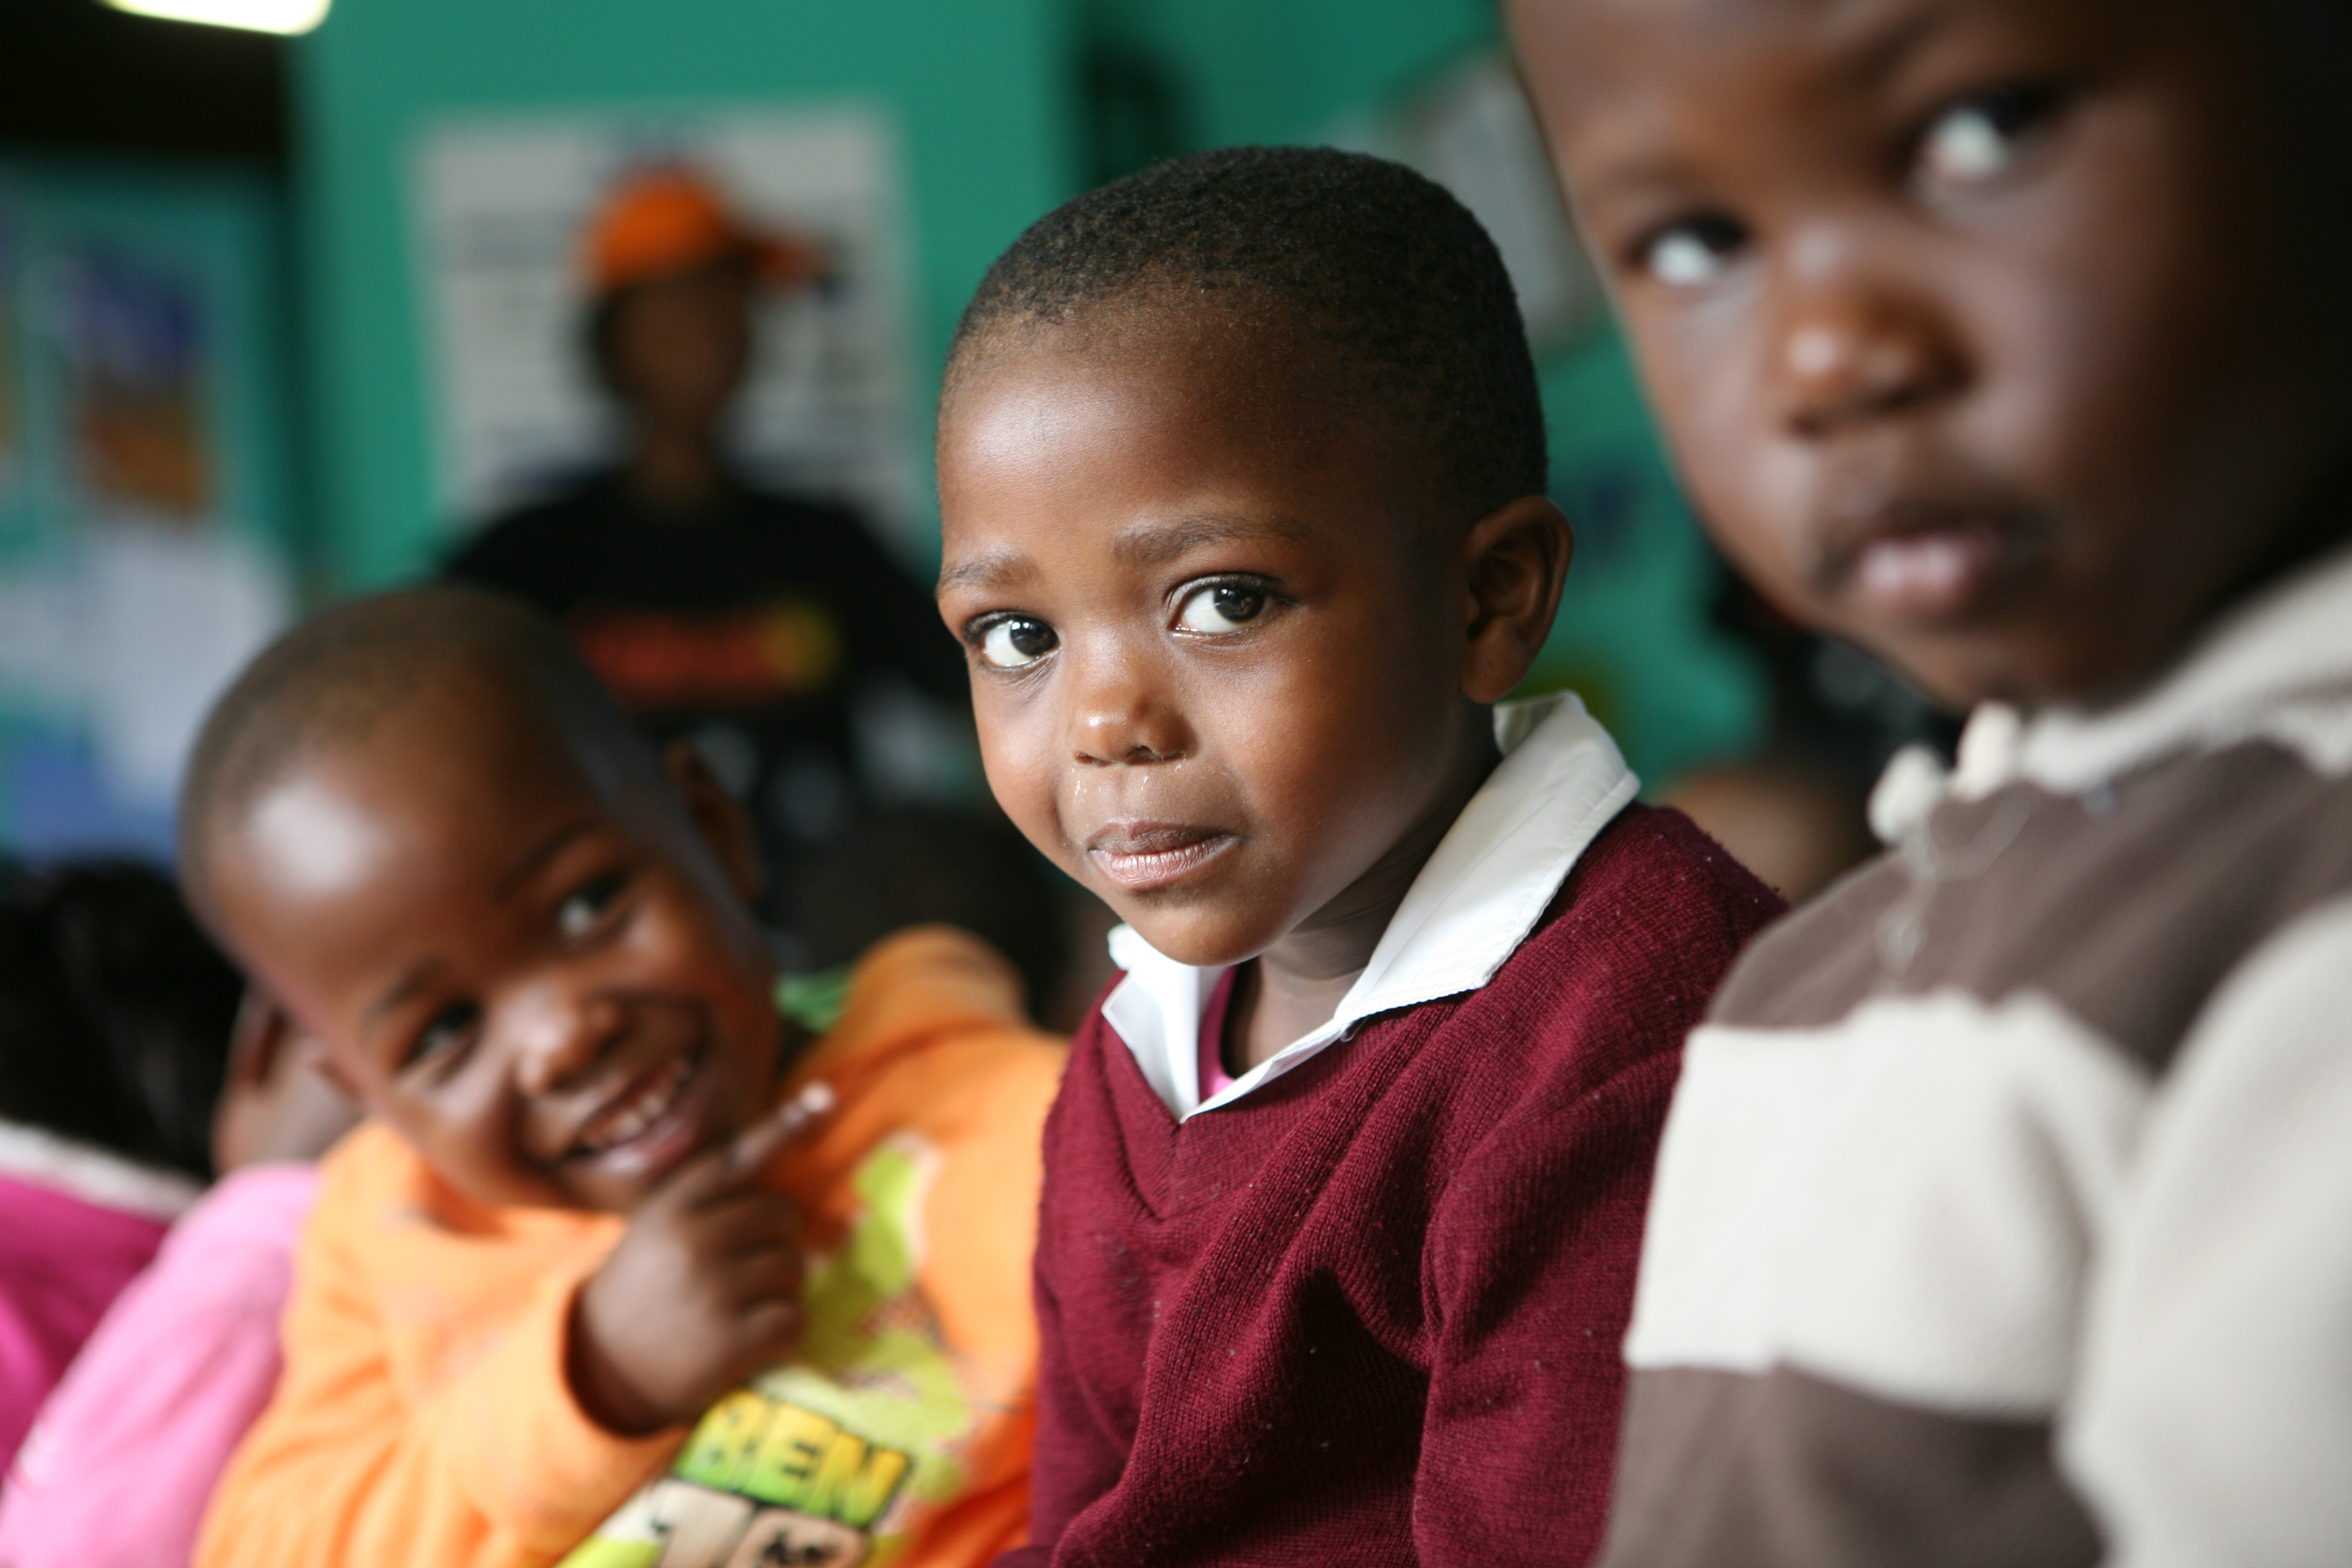 School children in South Africa. For generic use